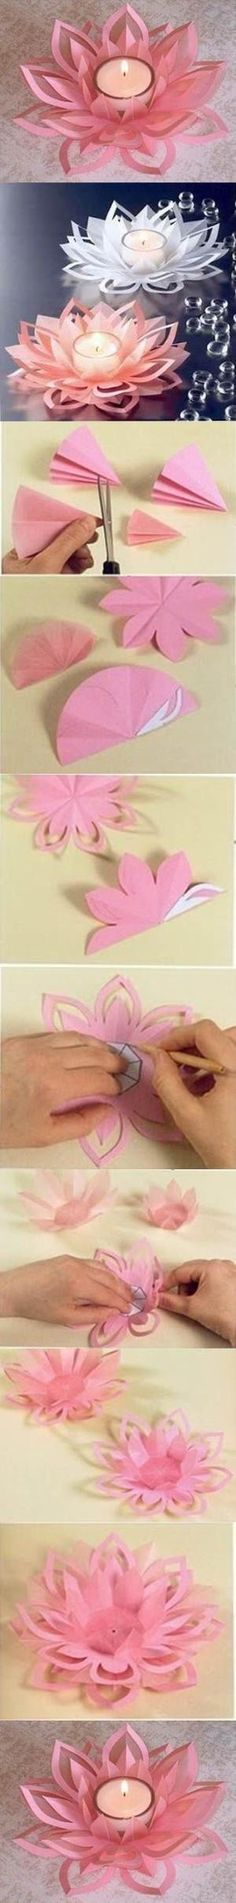 DIY Paper Lotus Candlestick 2 by judi.laughter